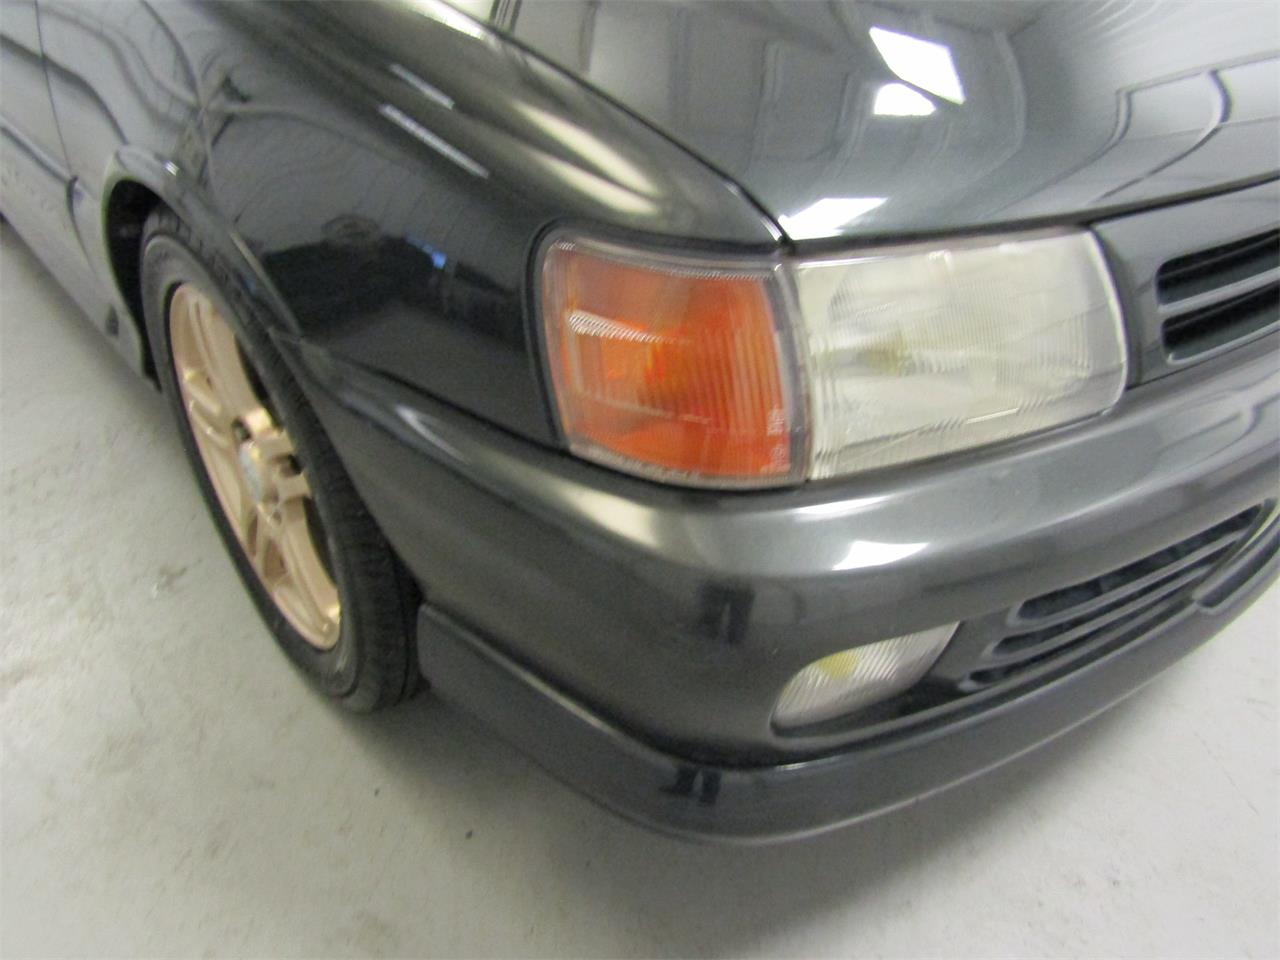 Large Picture of 1990 Toyota Starlet located in Christiansburg Virginia - $10,900.00 - MO5C